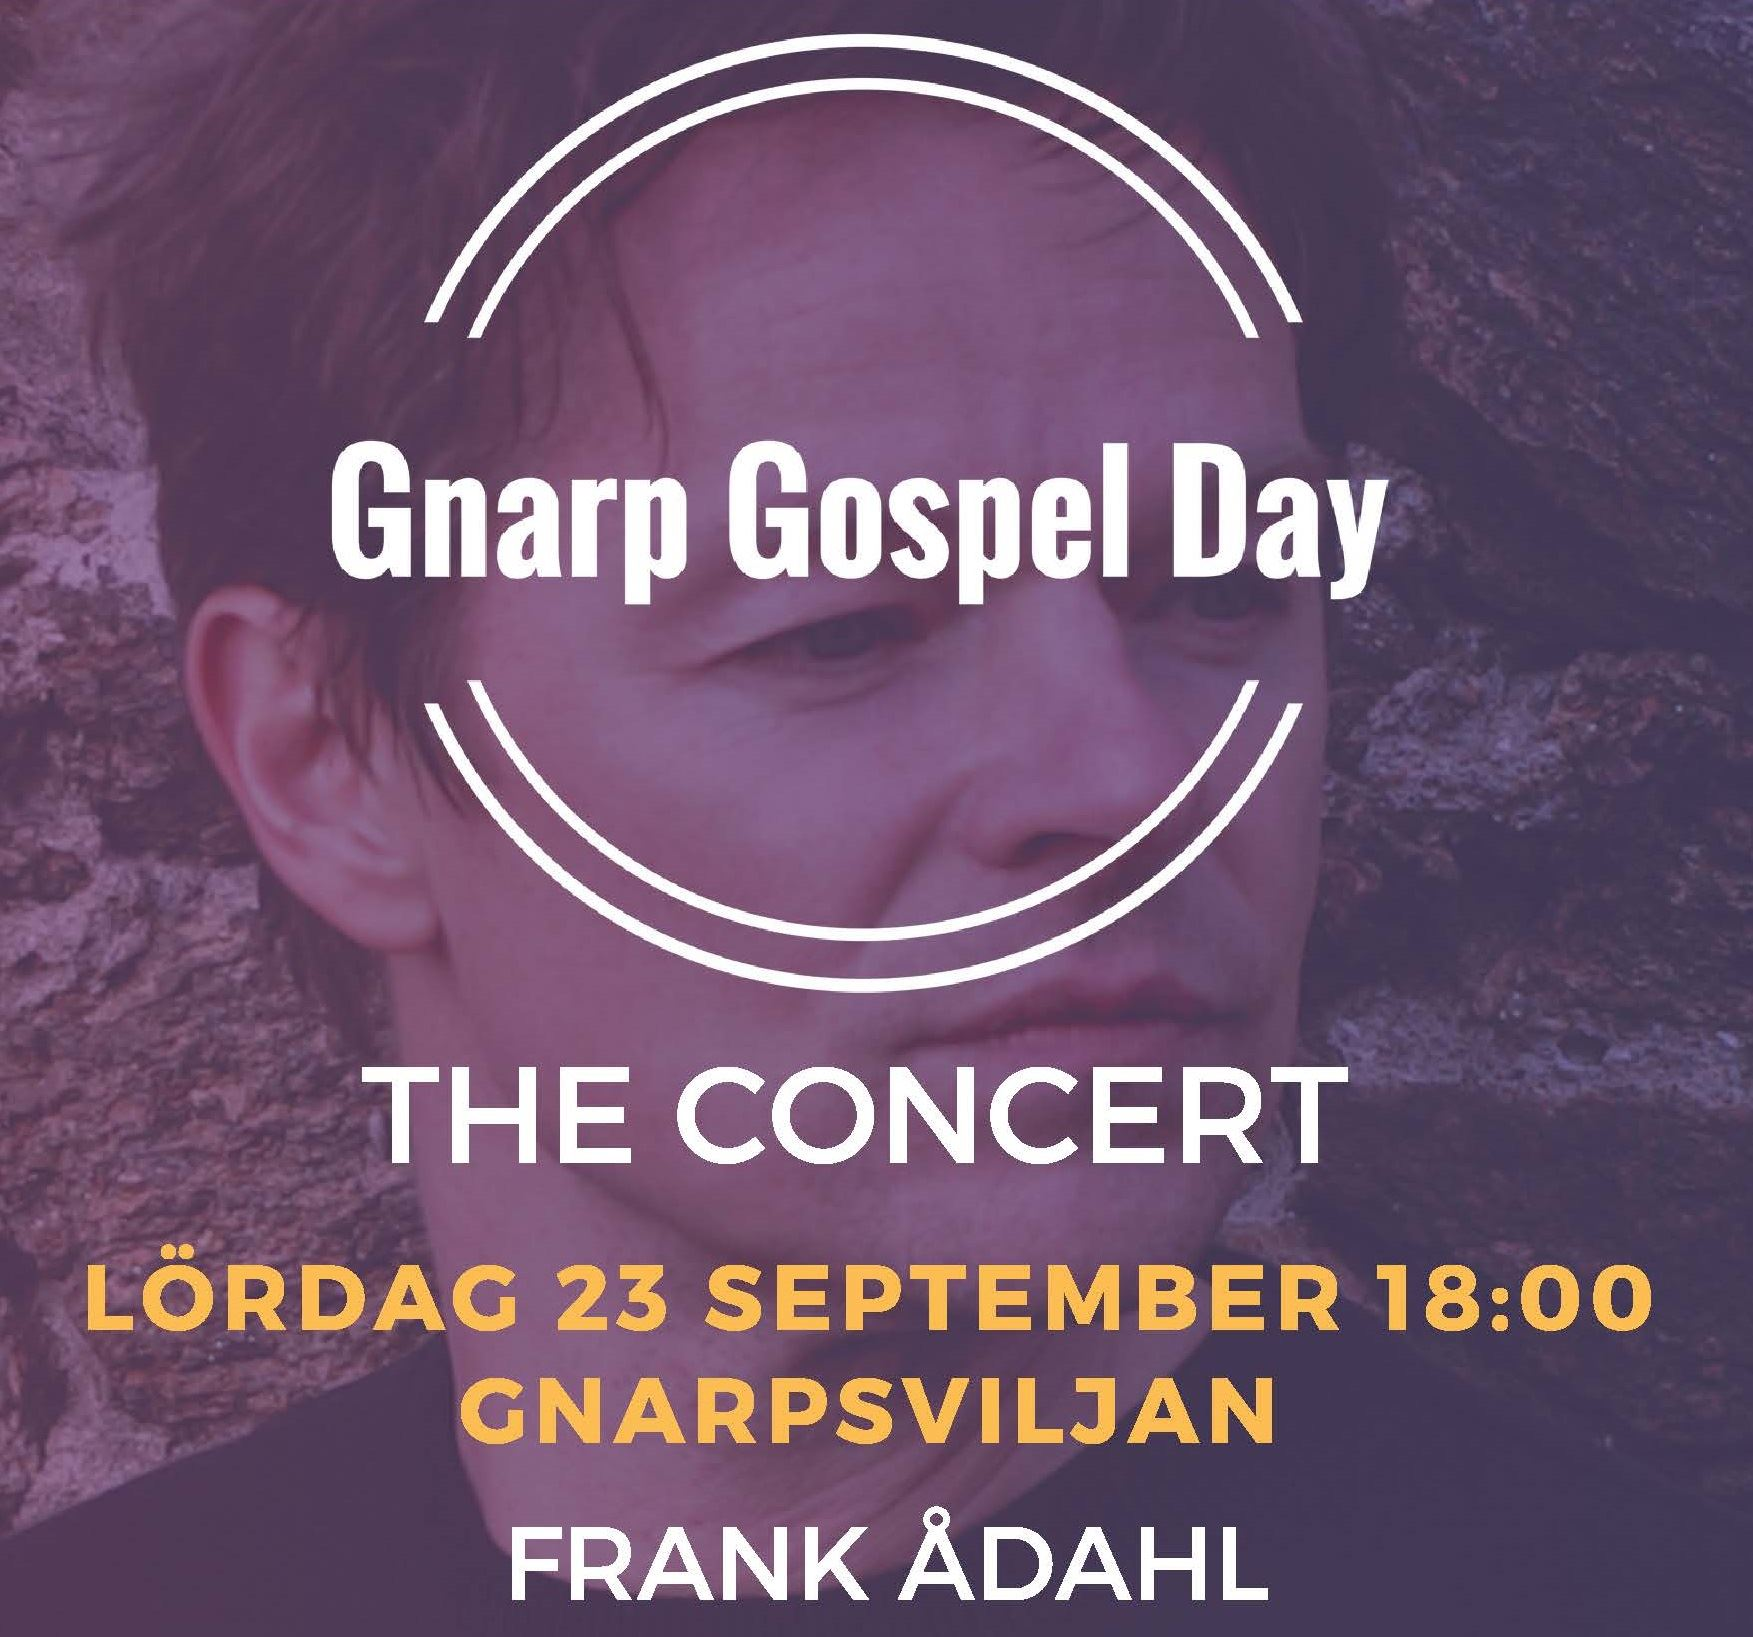 Gnarp Gospel Day